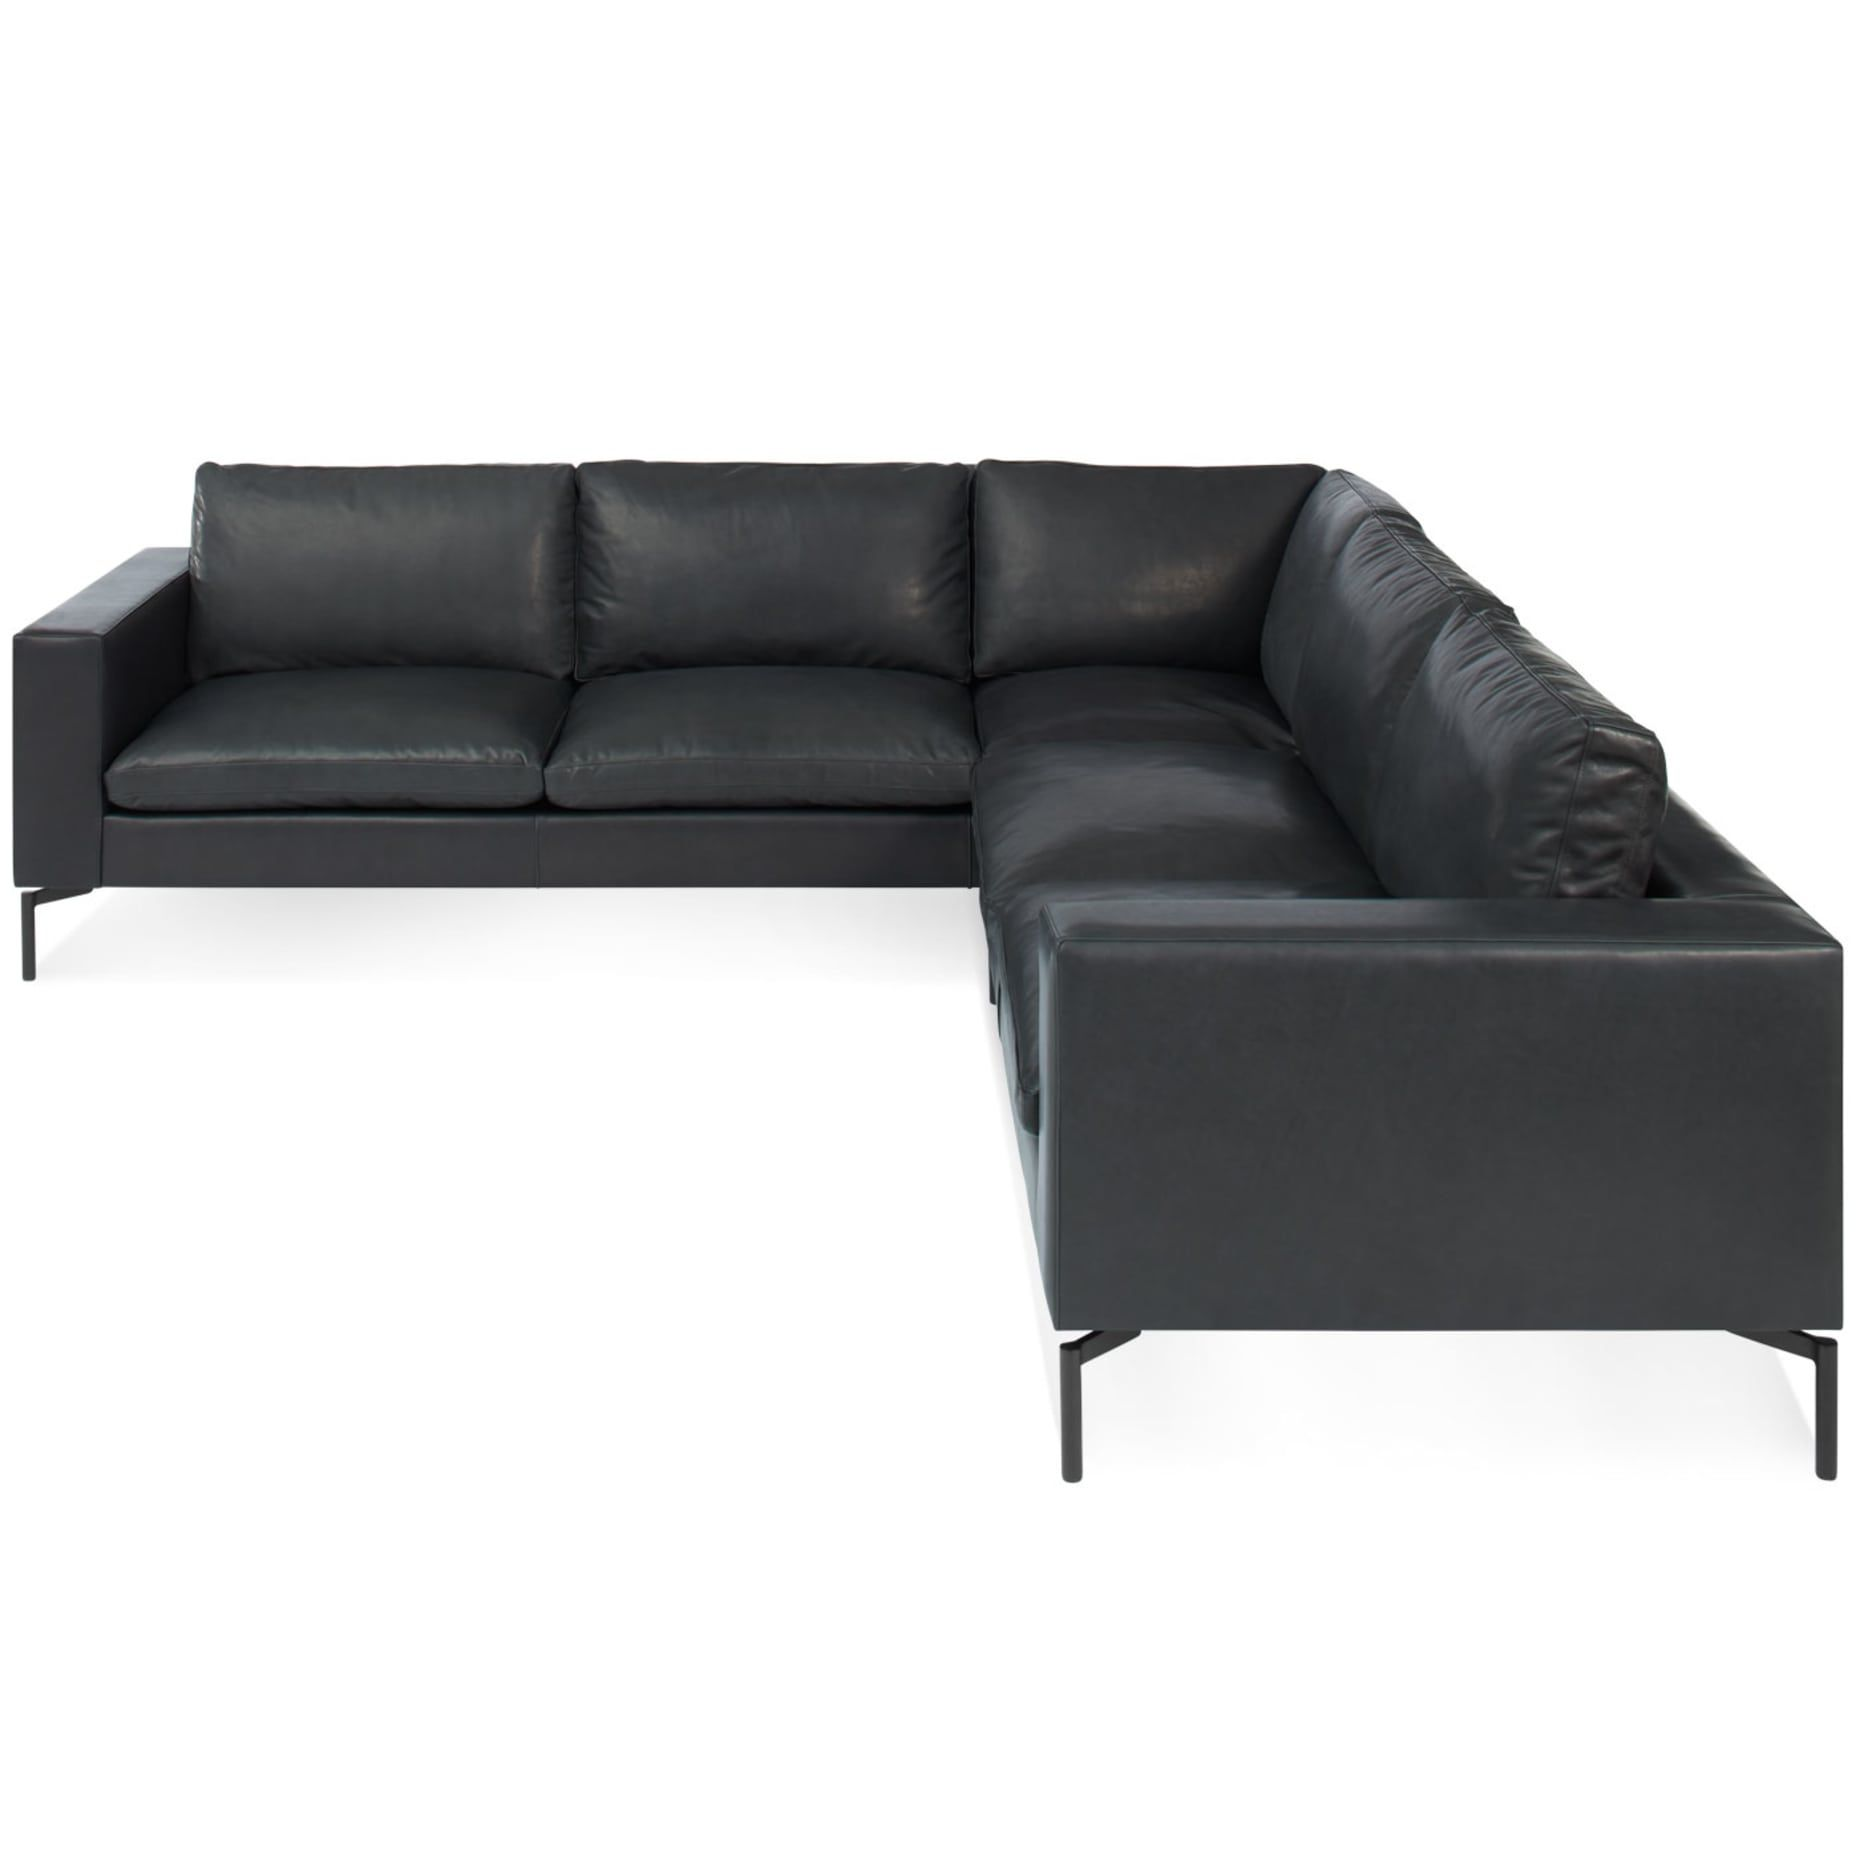 New Standard Left Sectional Sofa Small Sectional Sofa Leather